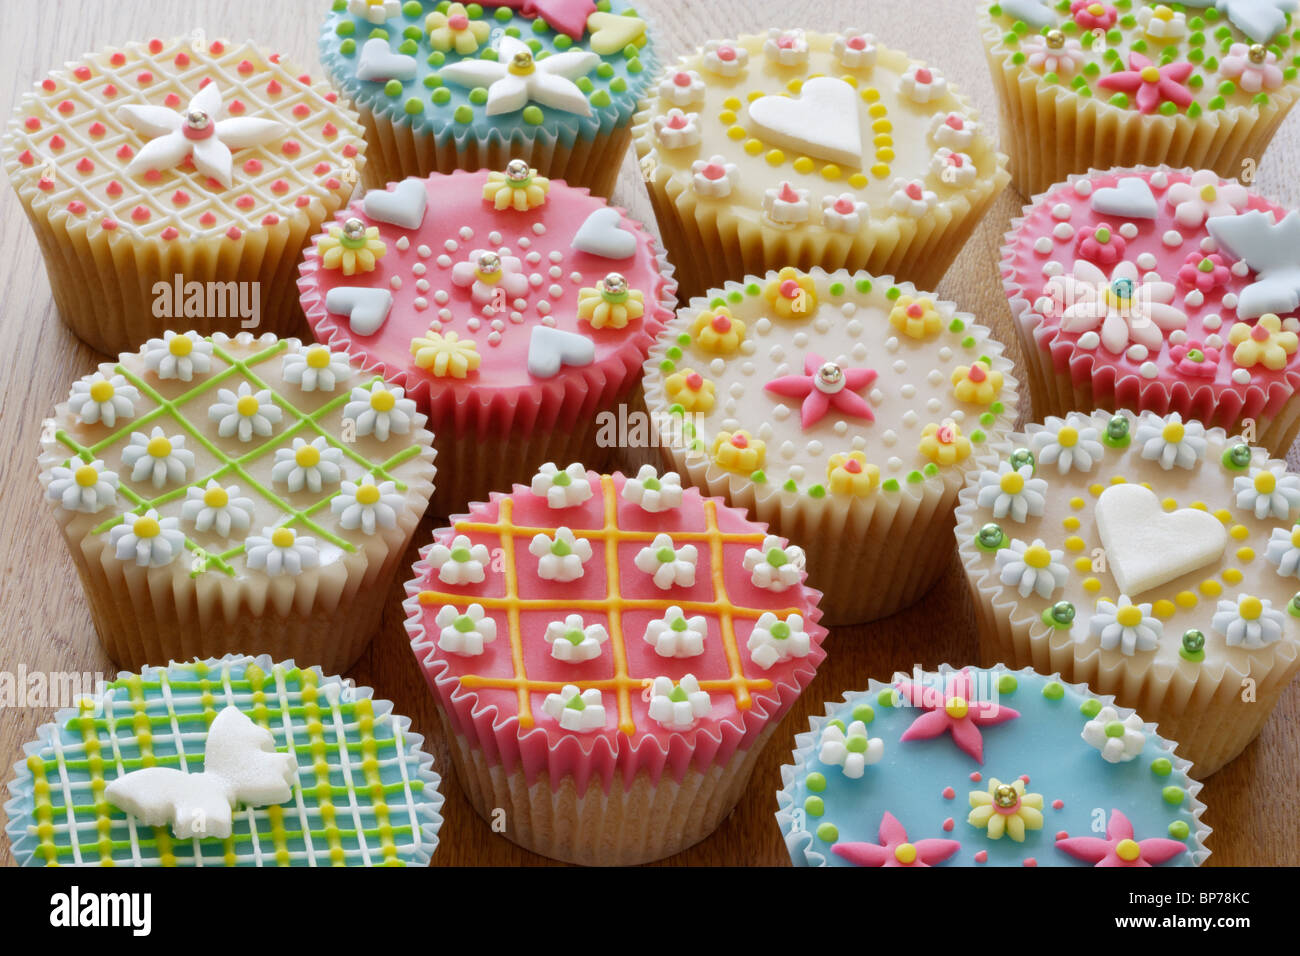 Cake Decorated With Cupcakes : highly decorated cupcakes or fairy cakes Stock Photo ...